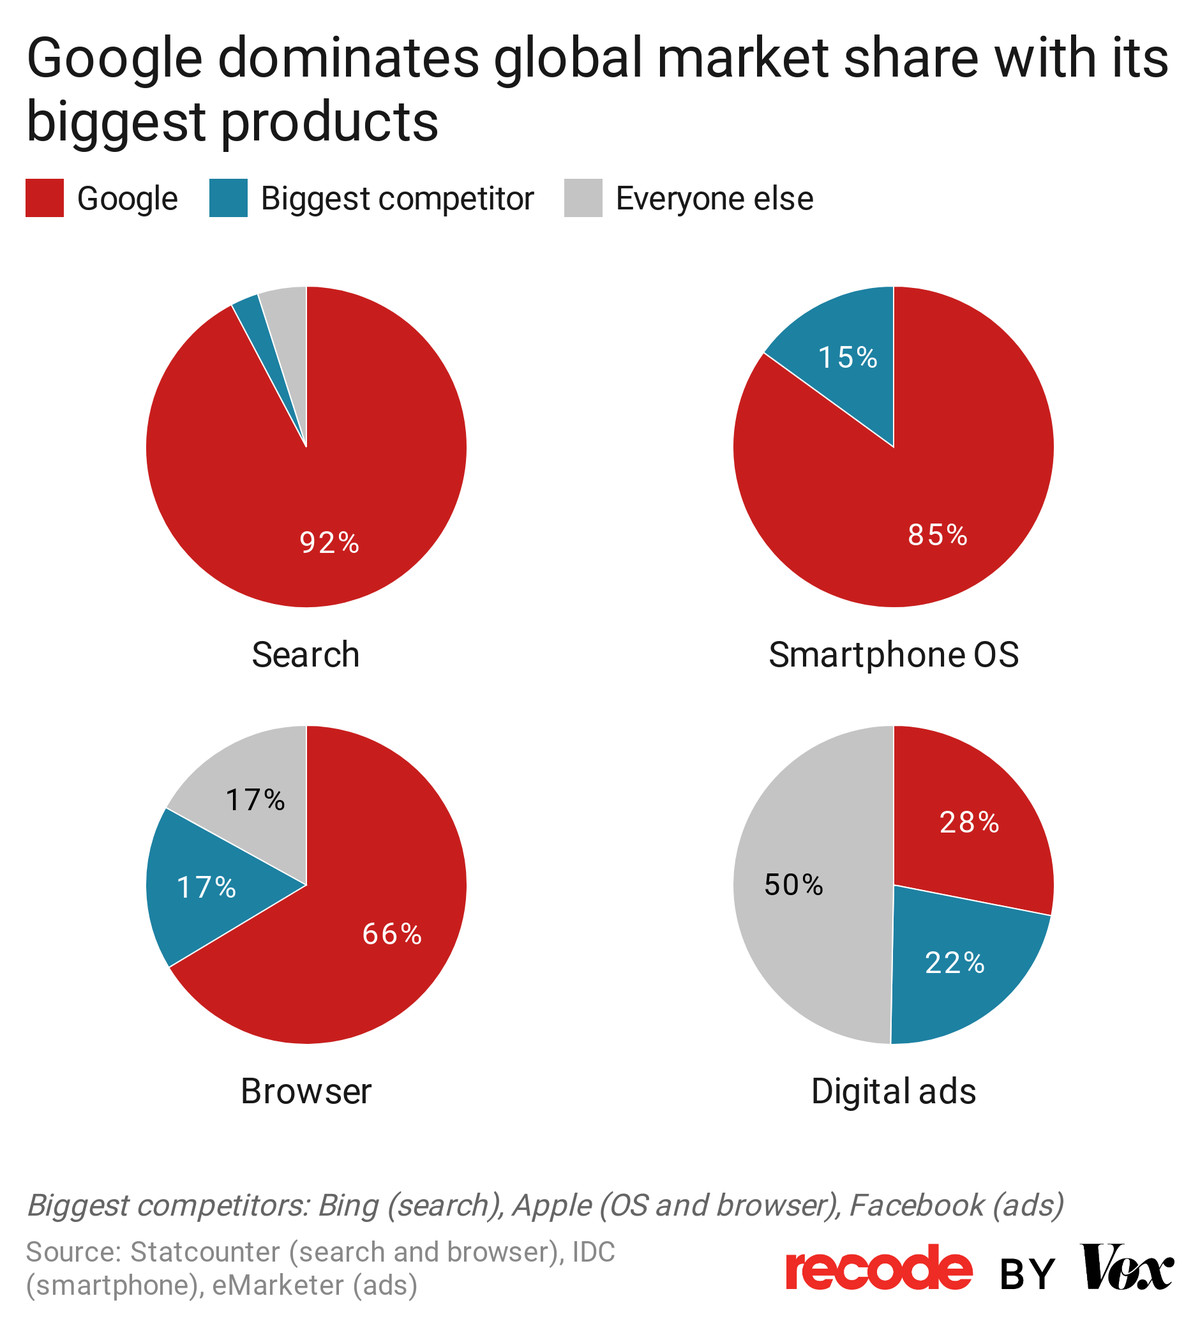 A chart showing Google's dominance in search, smartphone OS, and digital ads.